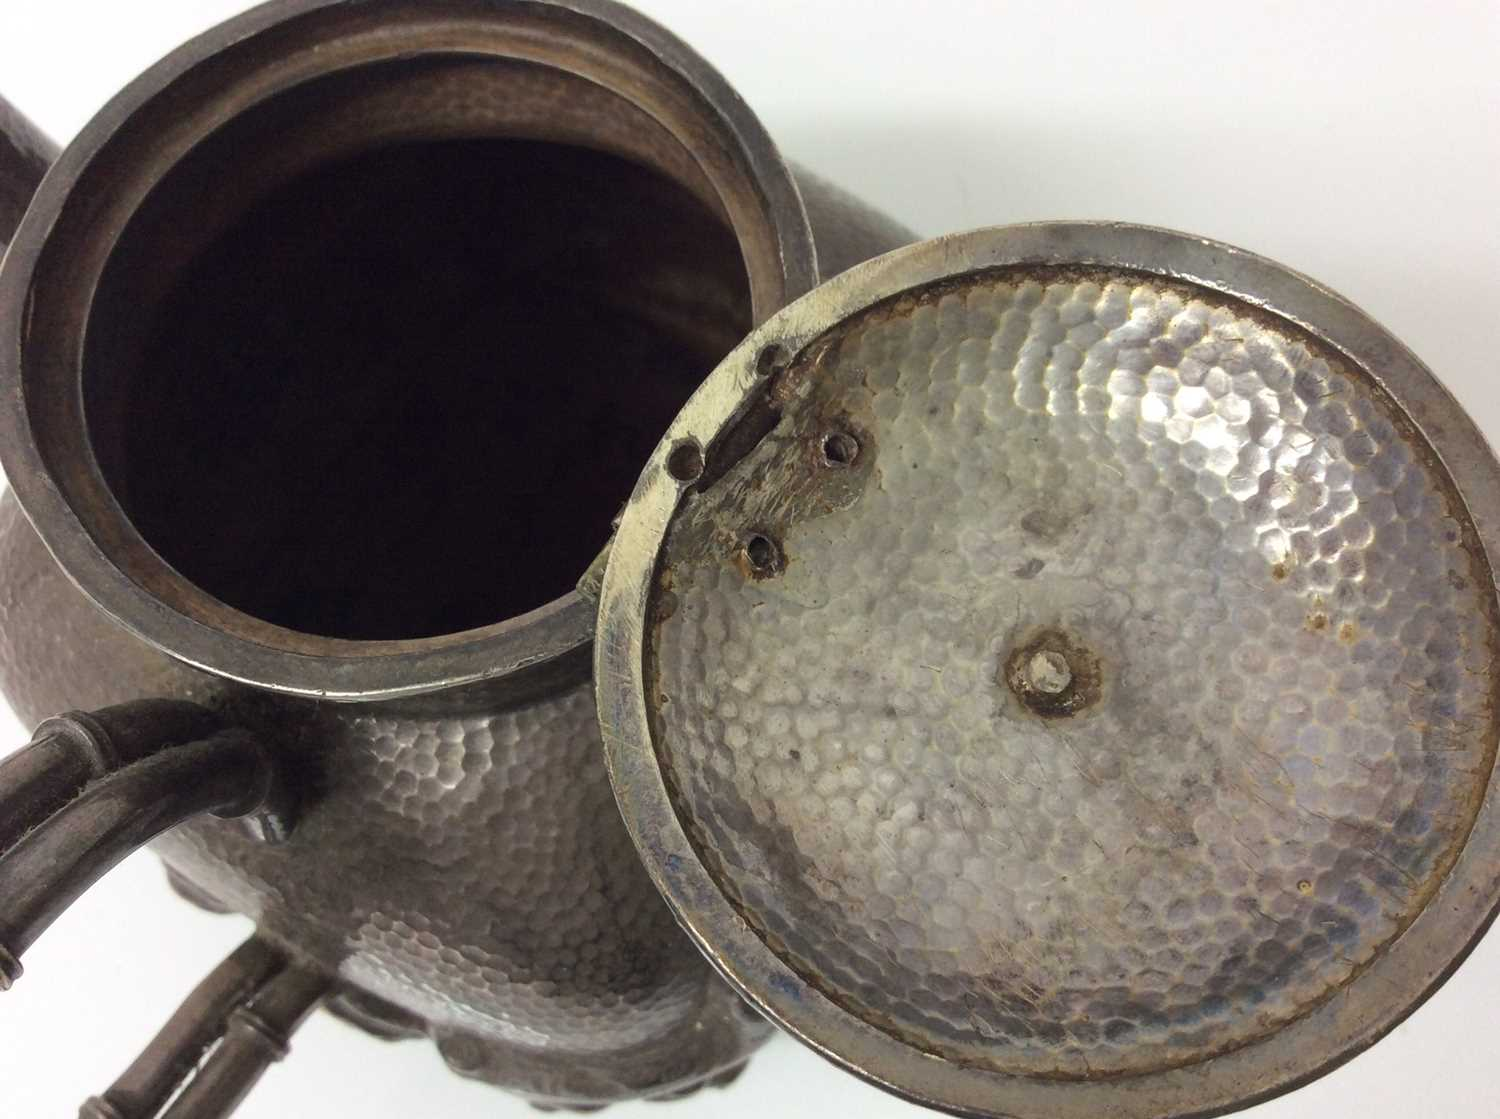 Chinese silver teapot and jug - Image 6 of 12